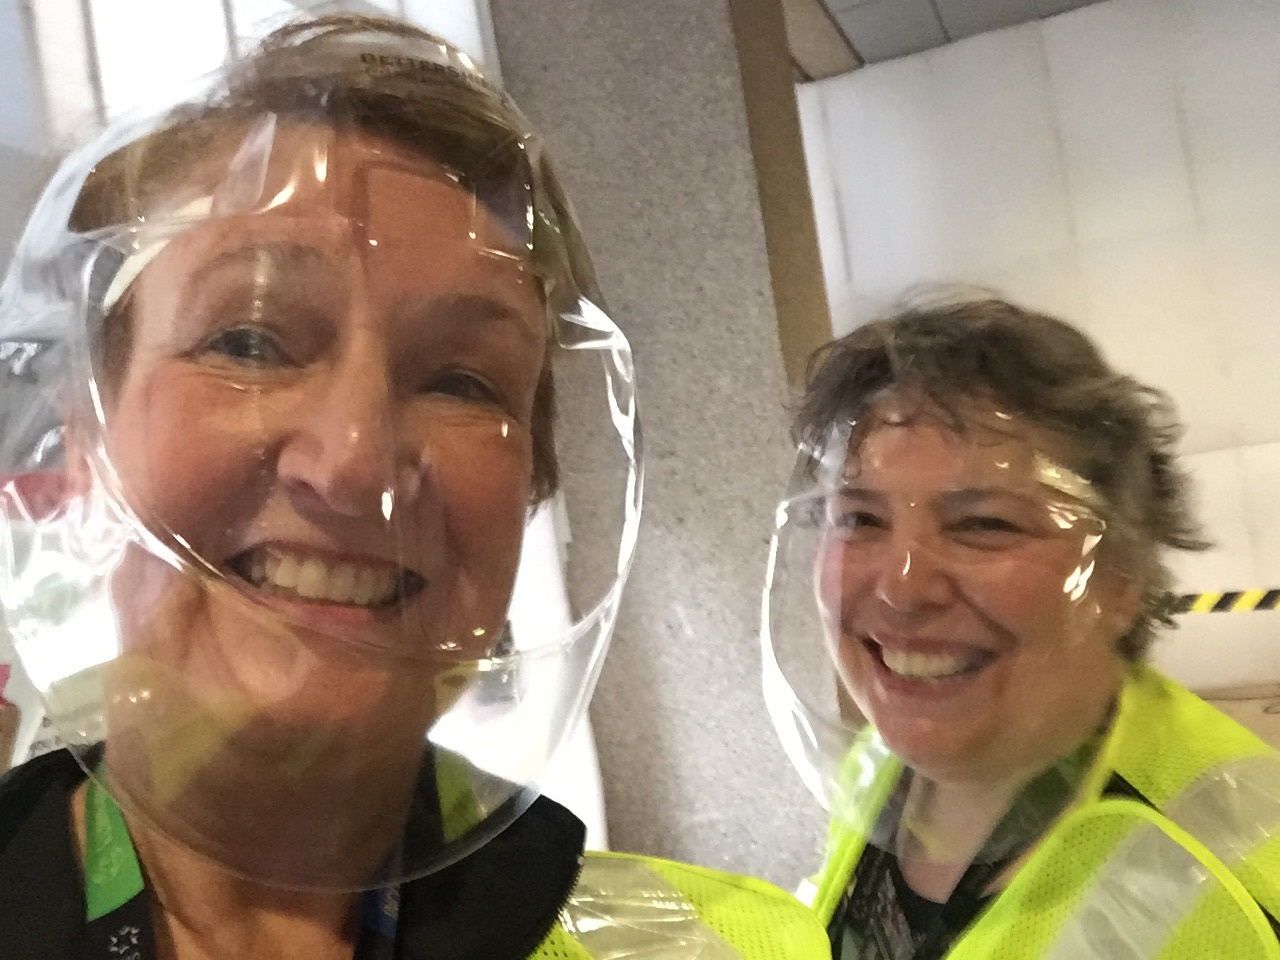 Two women in reflective vests and face shields looking at the camera, smiling